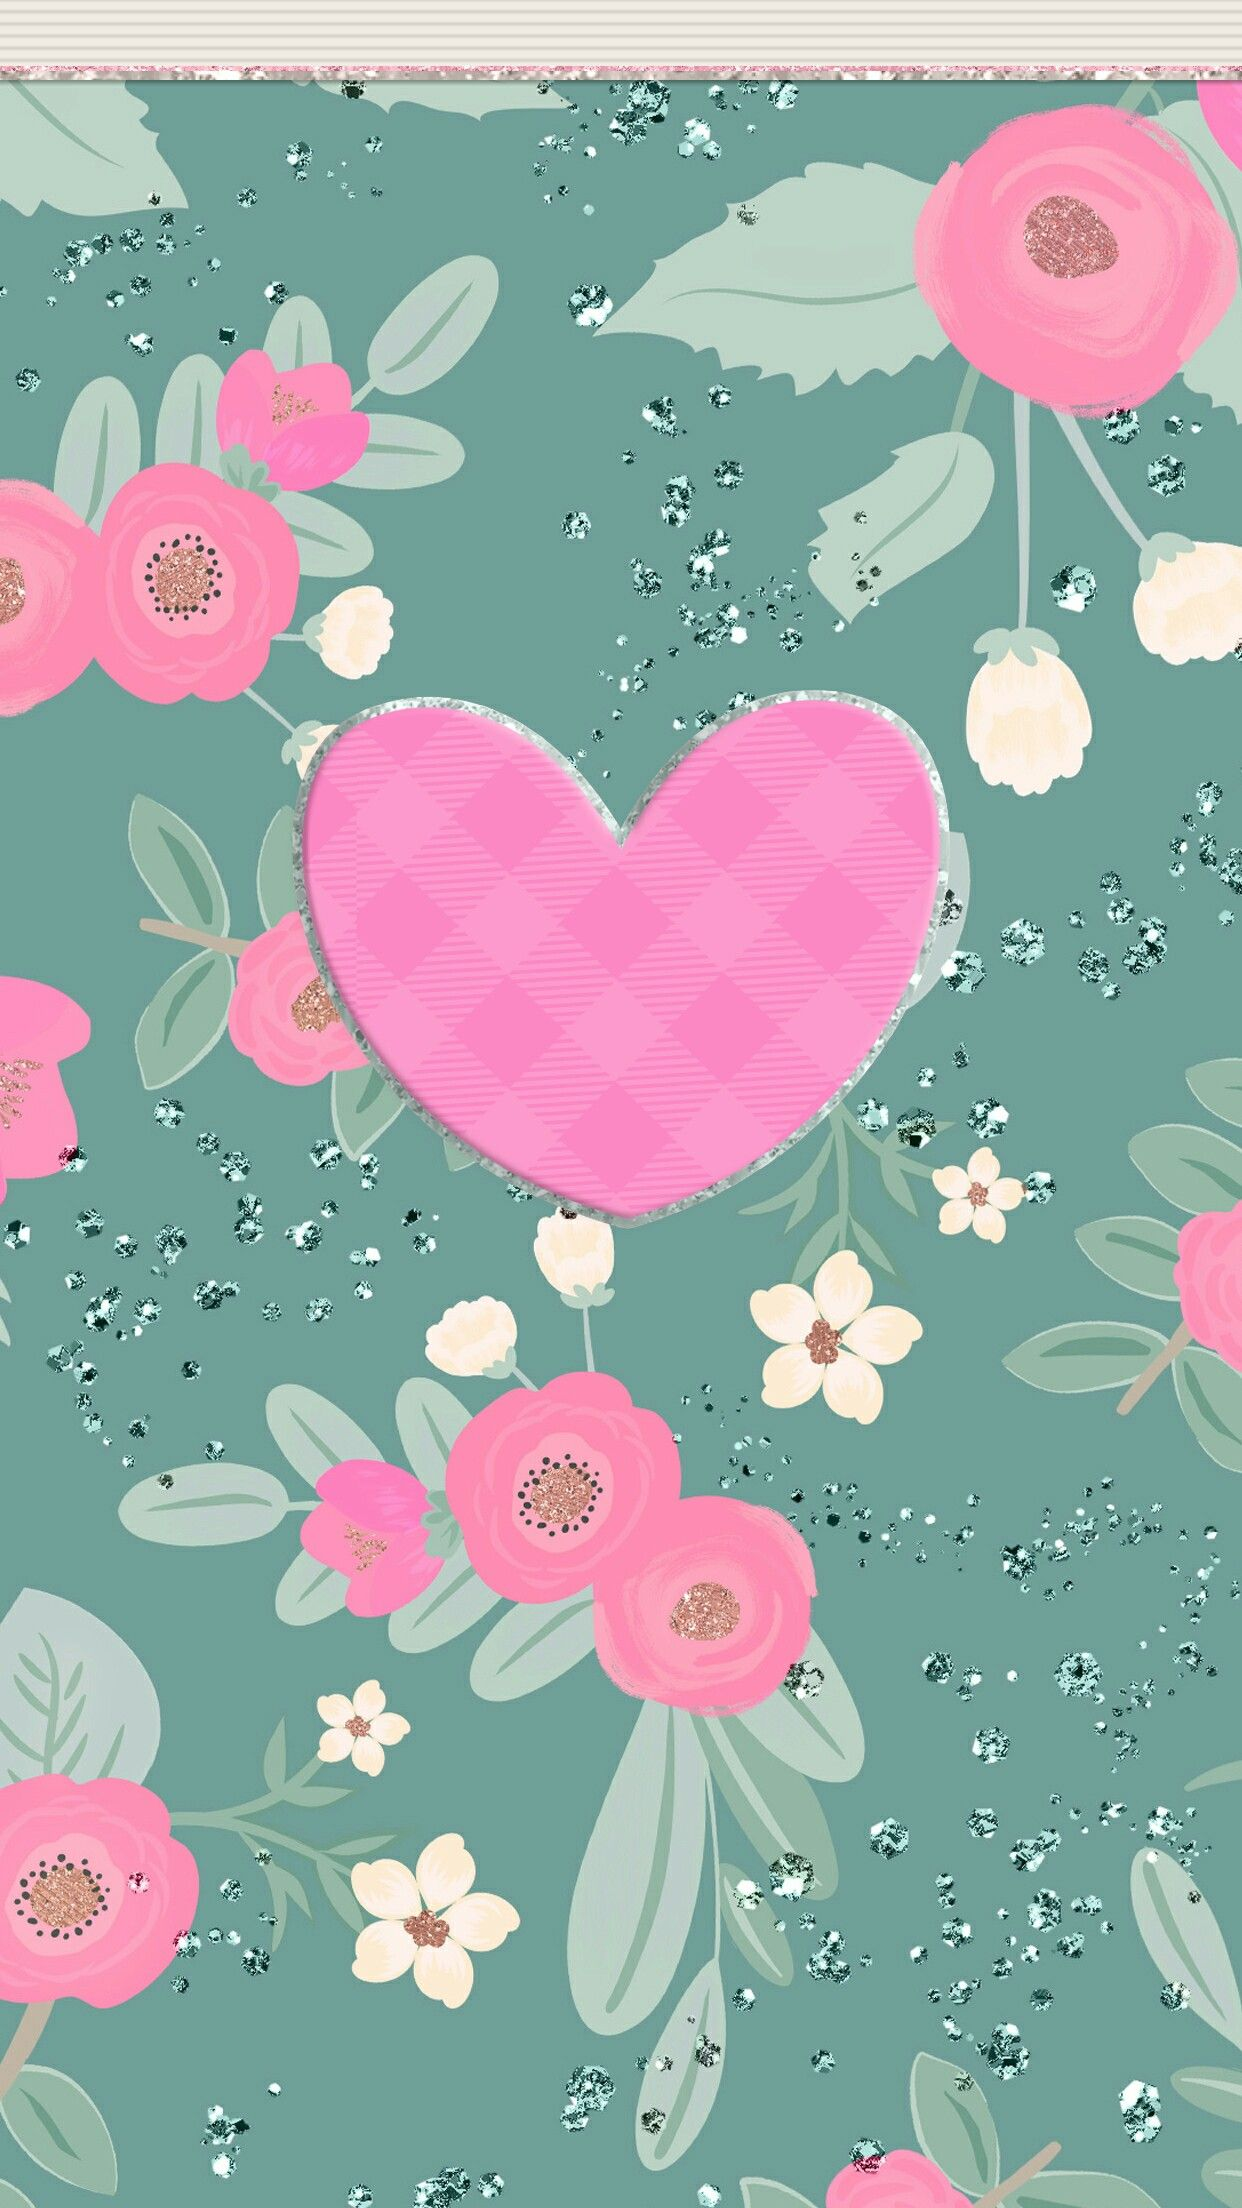 Cool Wallpaper Hello Kitty Floral - 11717009a56f4b33bad1a33cd79a4a54  Trends_809689.jpg